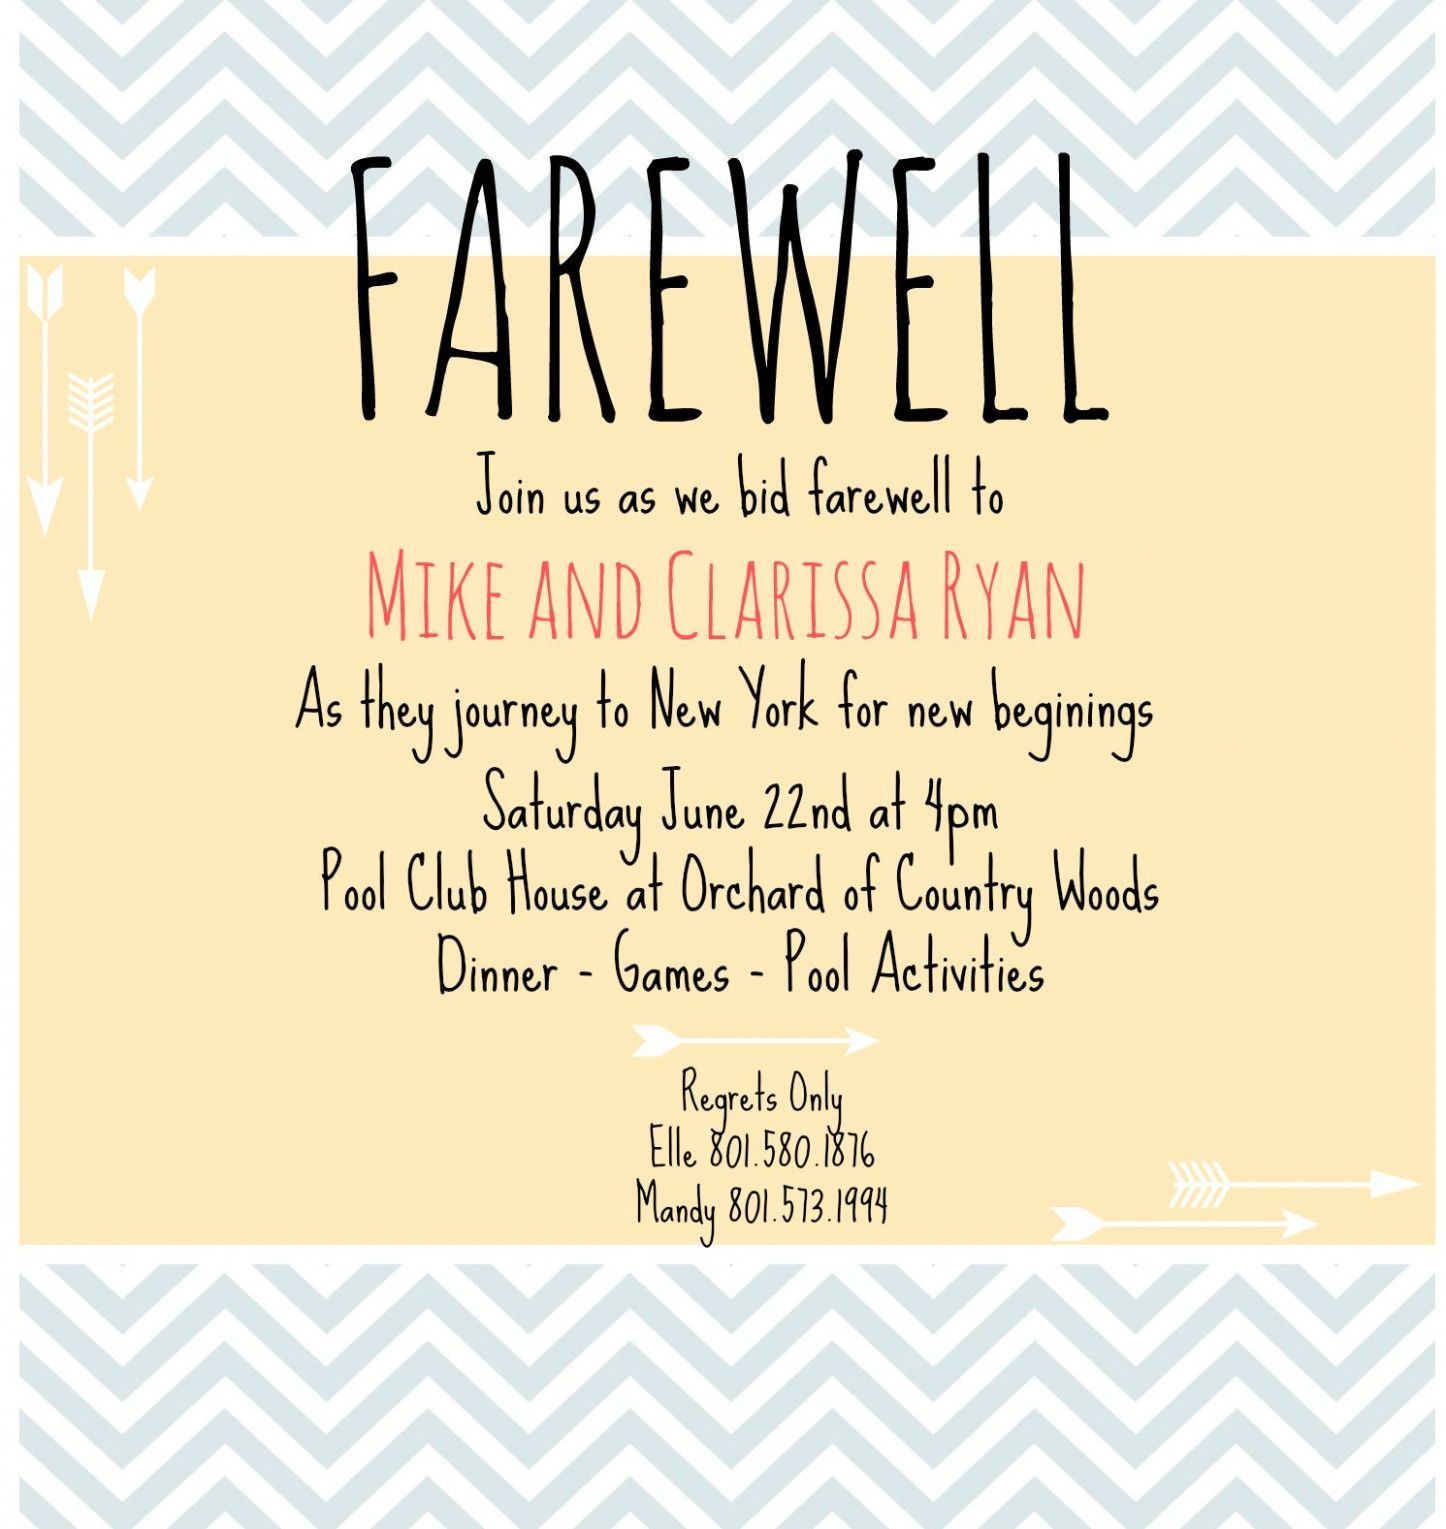 How To Make Farewell Invitation Card  Farewell party invitations